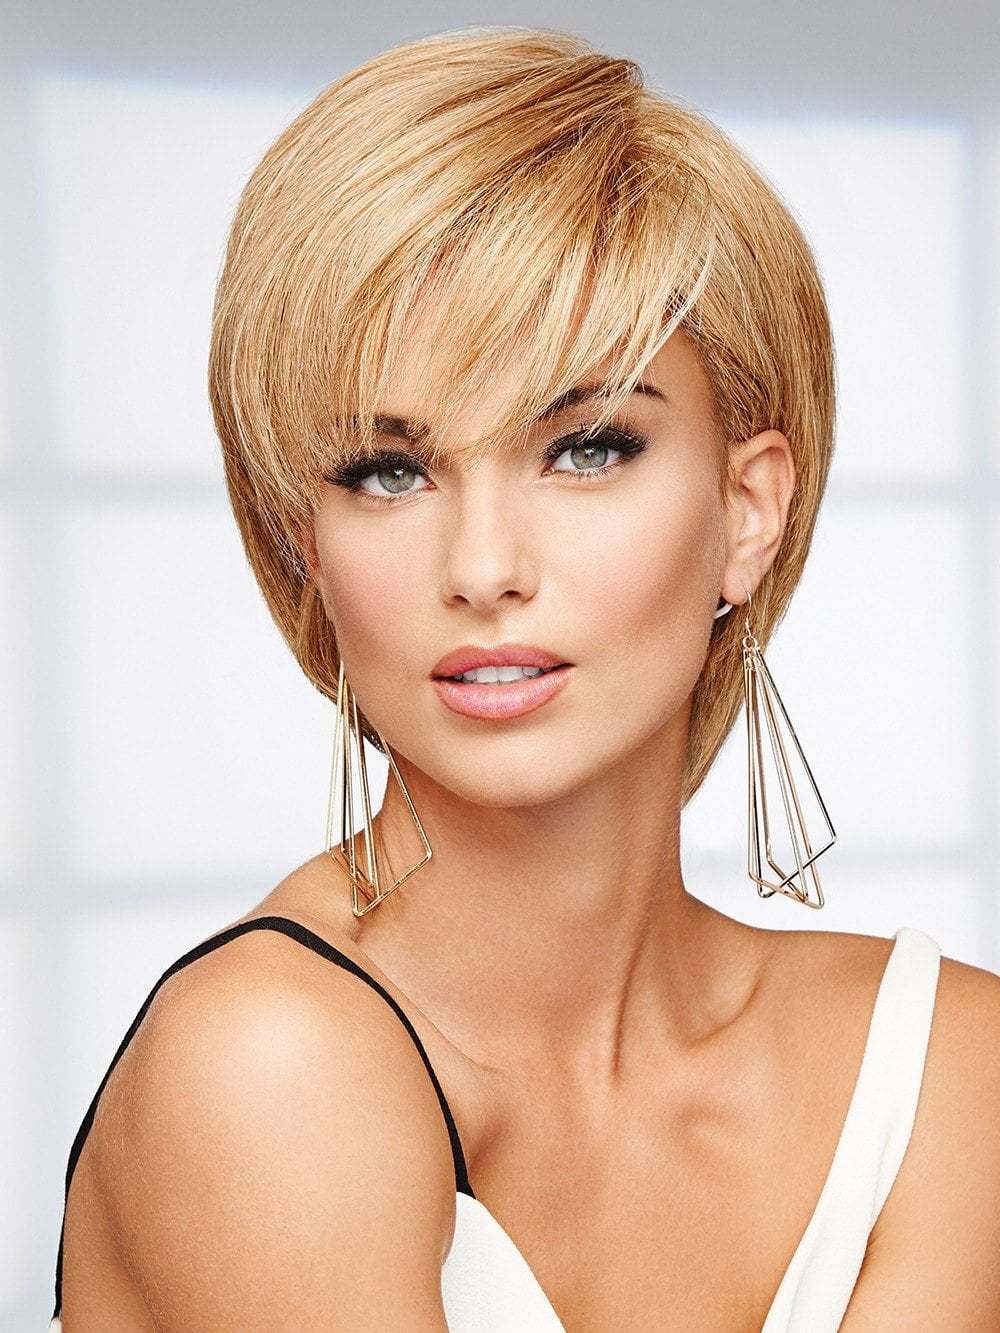 The 100% human hair can be tucked behind the ears and styled like a pixie or a short bob with face-framing layers.